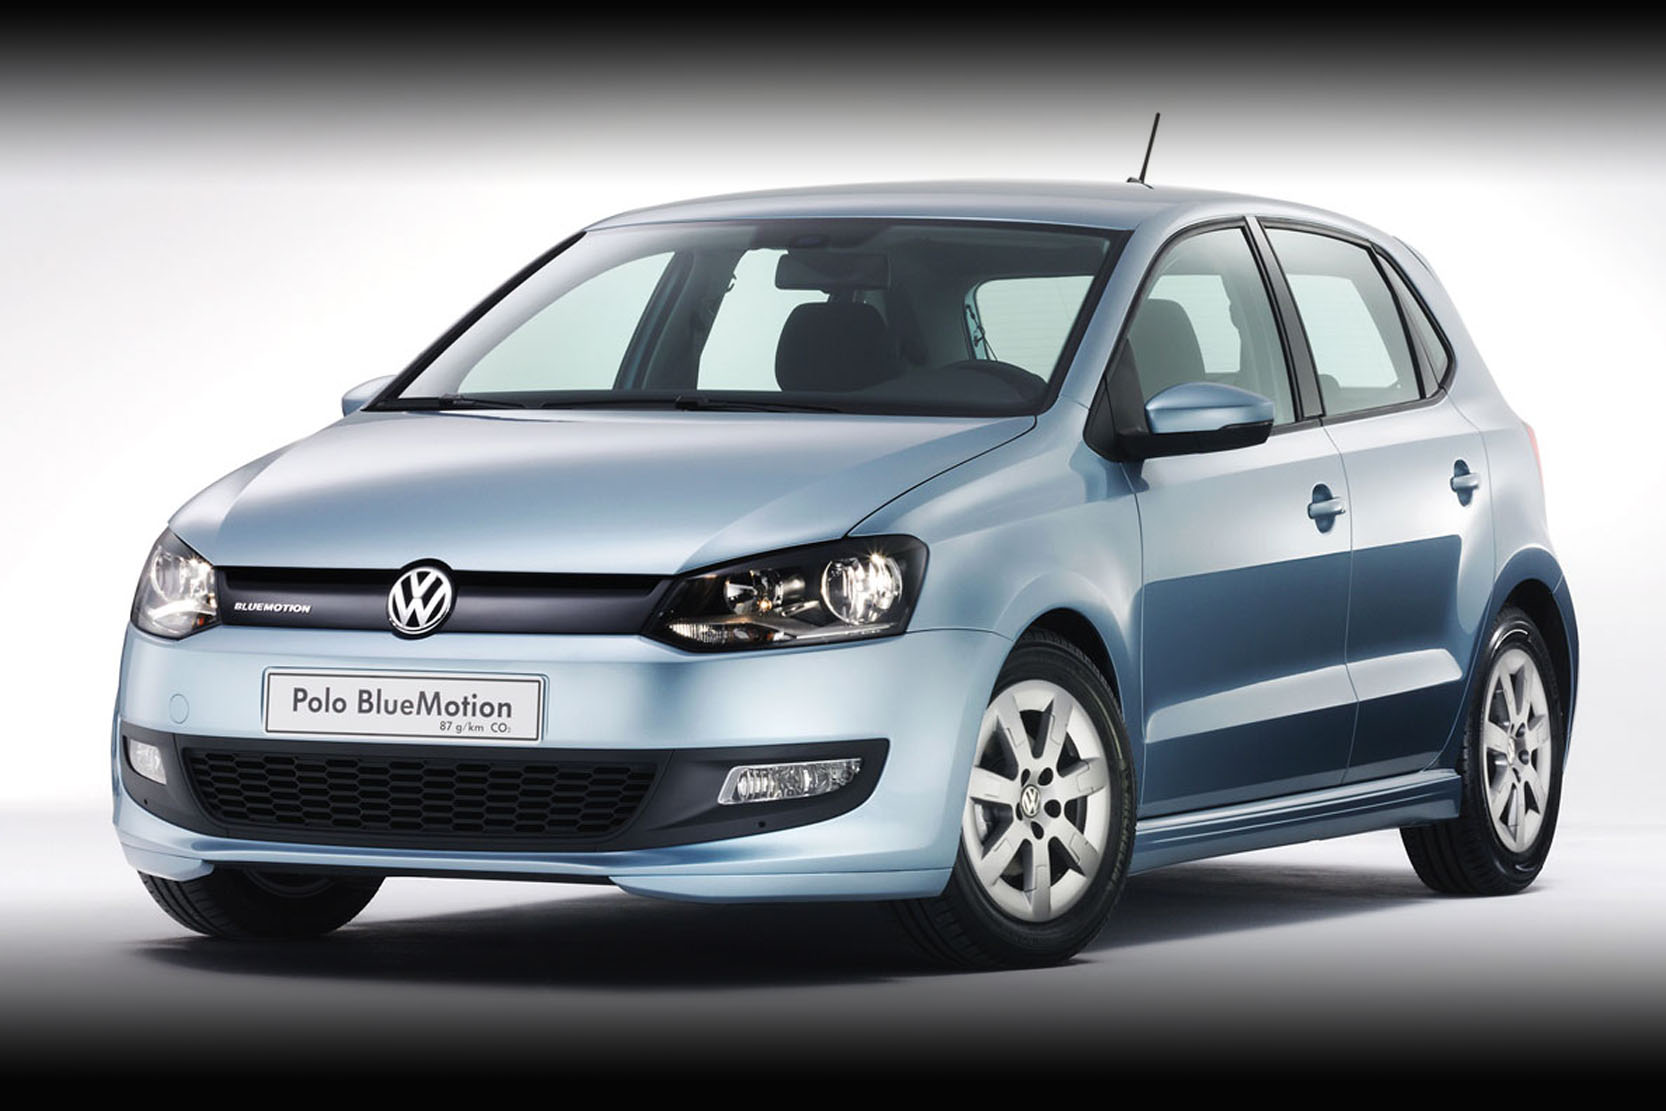 Volkswagen Polo 15 Hd Wallpaper